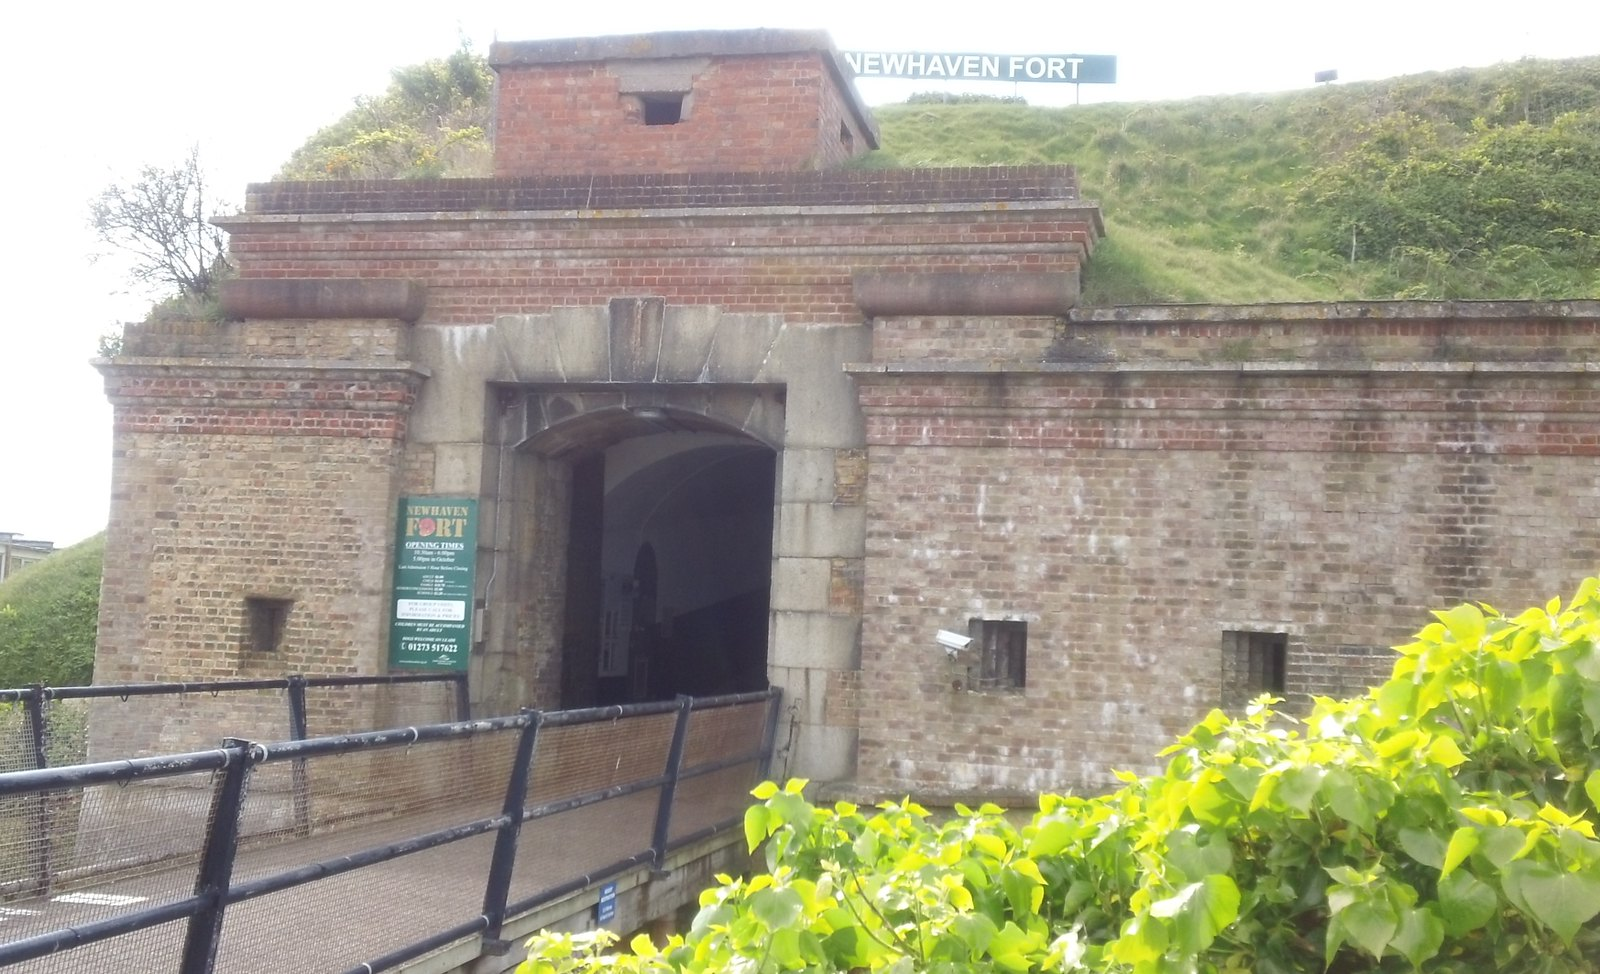 Fort - WW1 vintage Newhaven